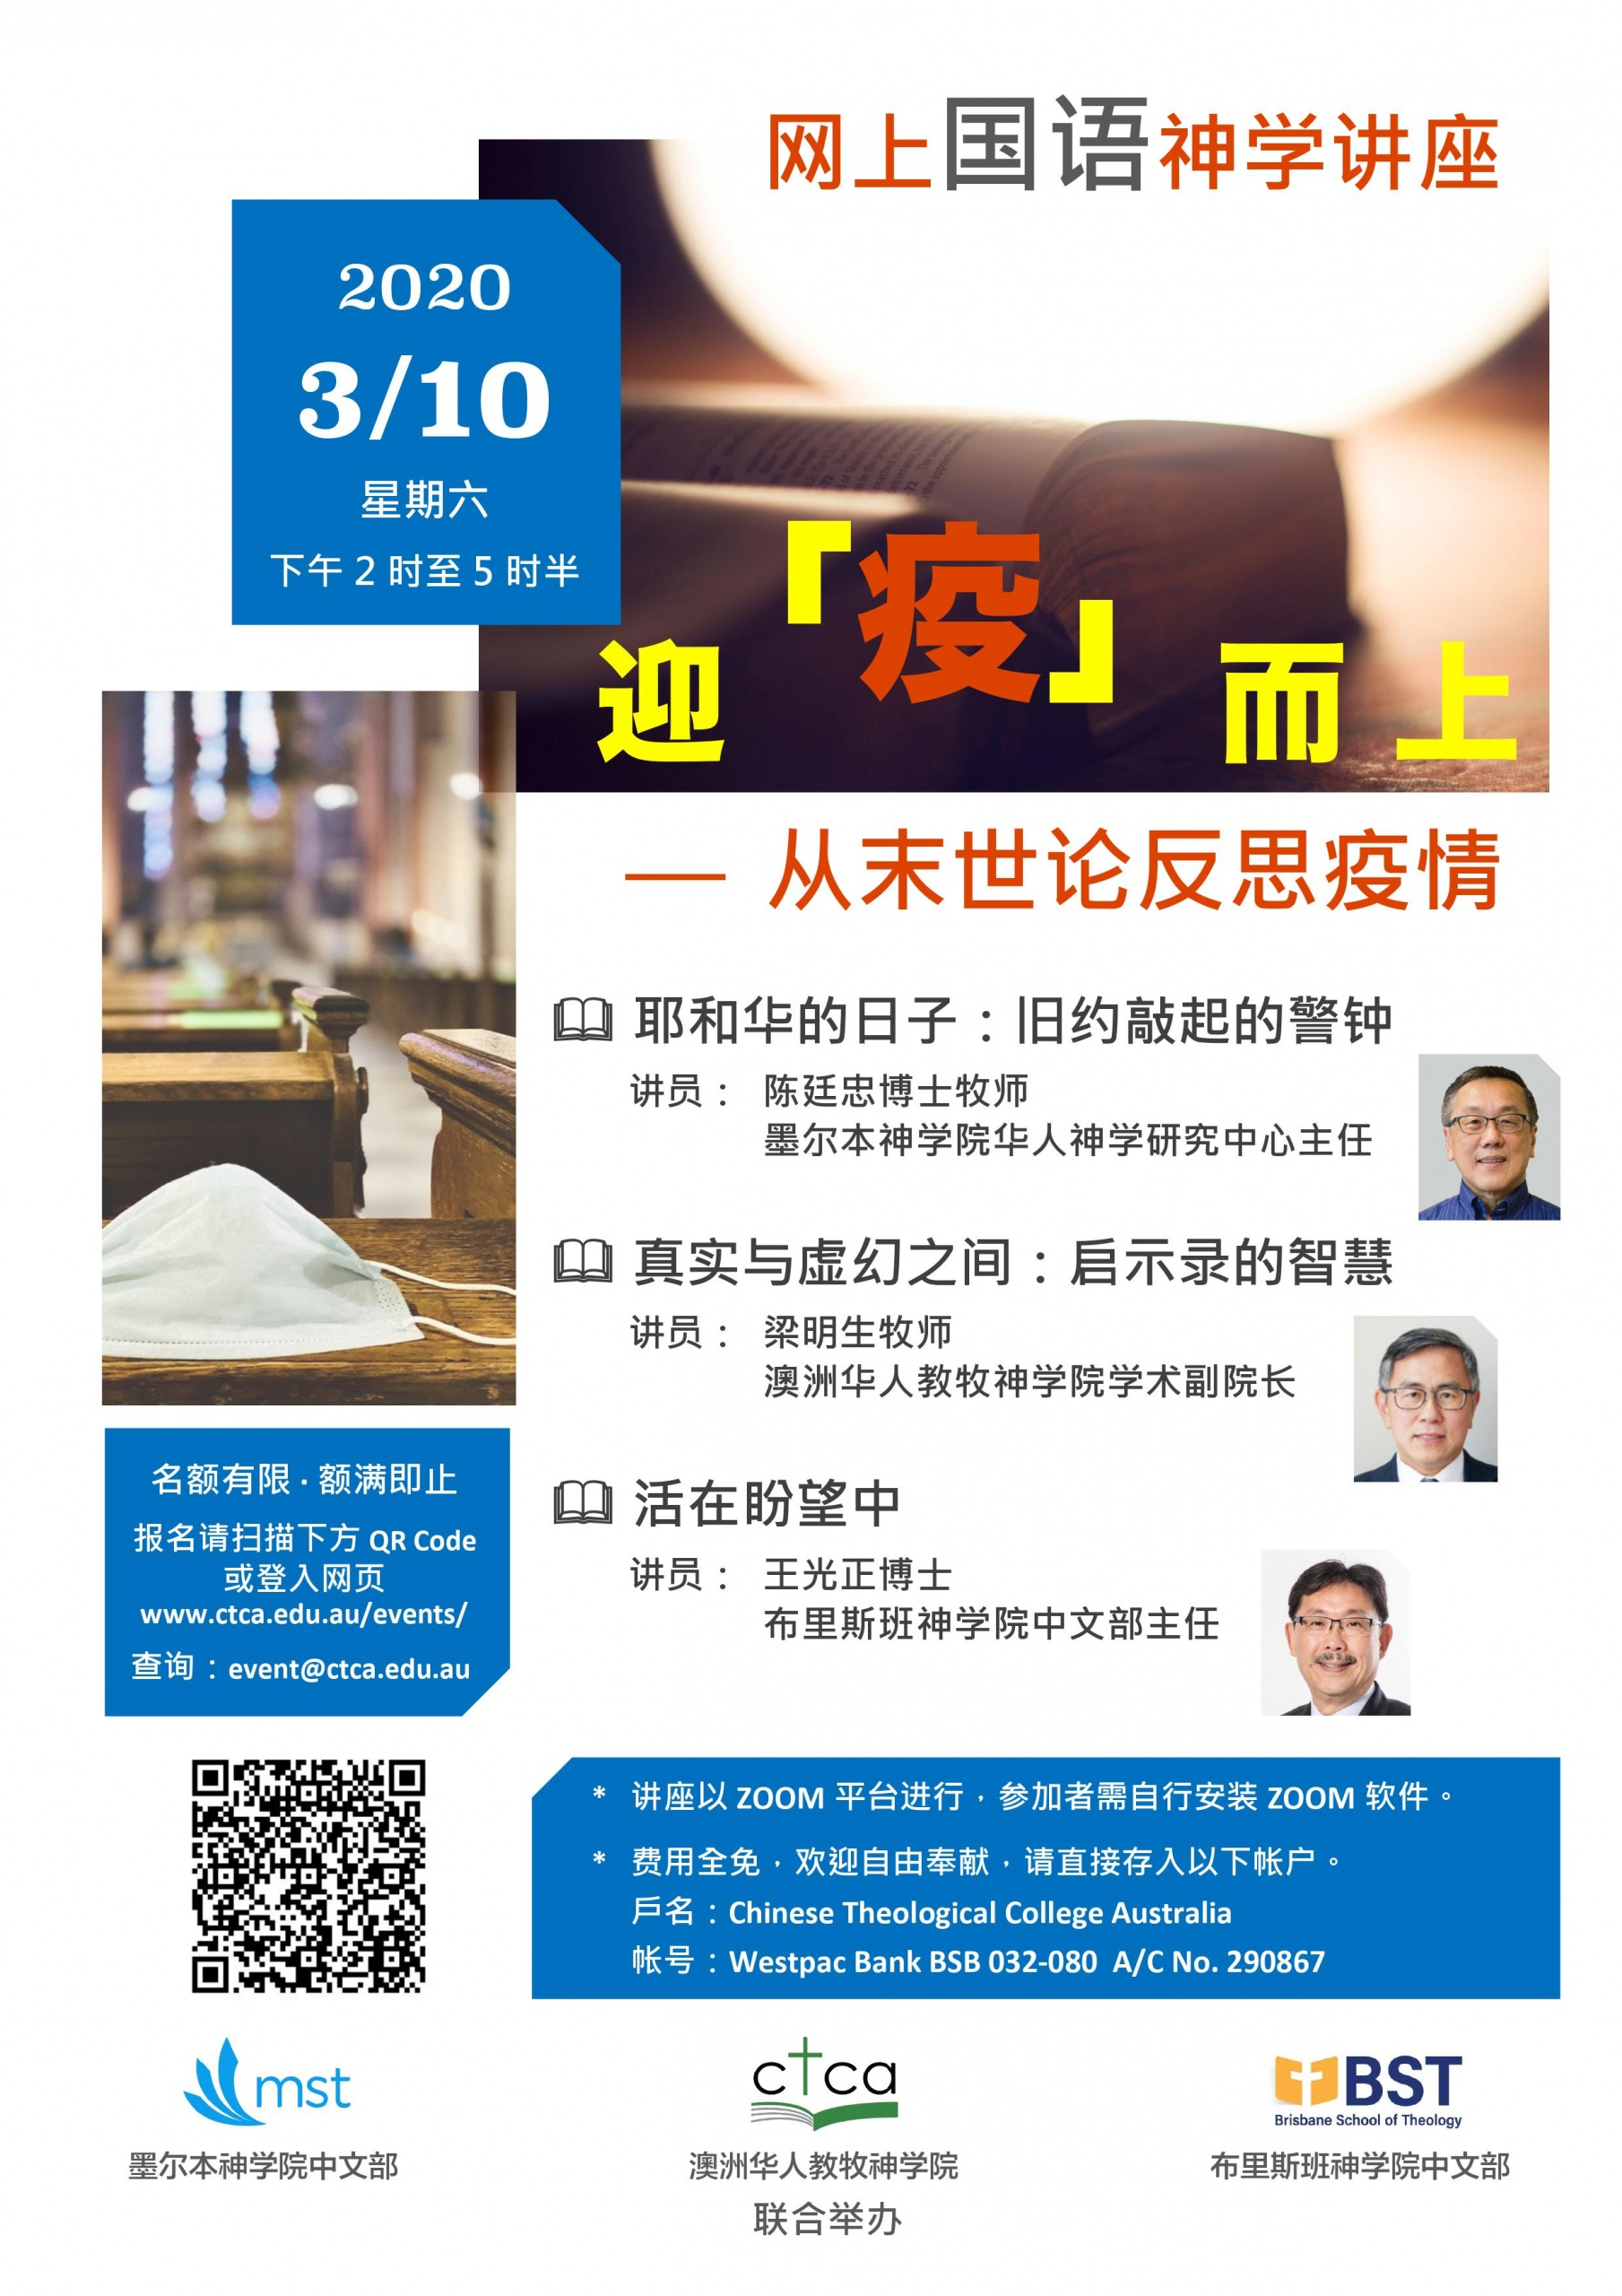 2020 Online Mandarin Theological Lecture Poster